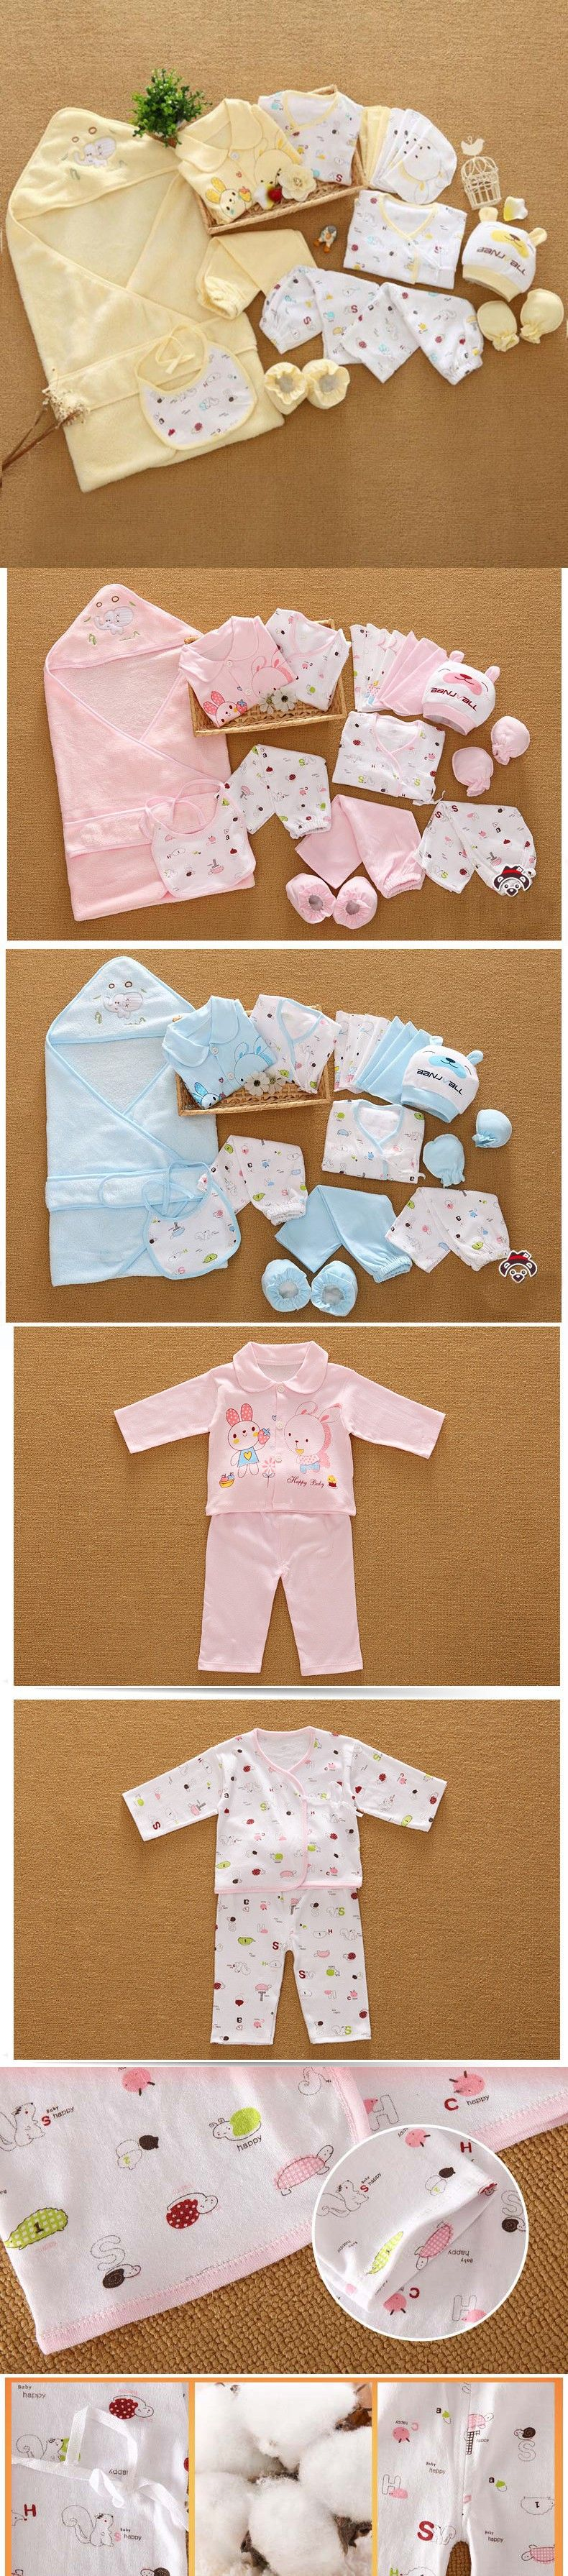 5772f78dd63db 21 Pcs/Set Cotton Newborn Baby Clothing Set for Girls Boys Toddler Baby- clothes New Born Gift Set